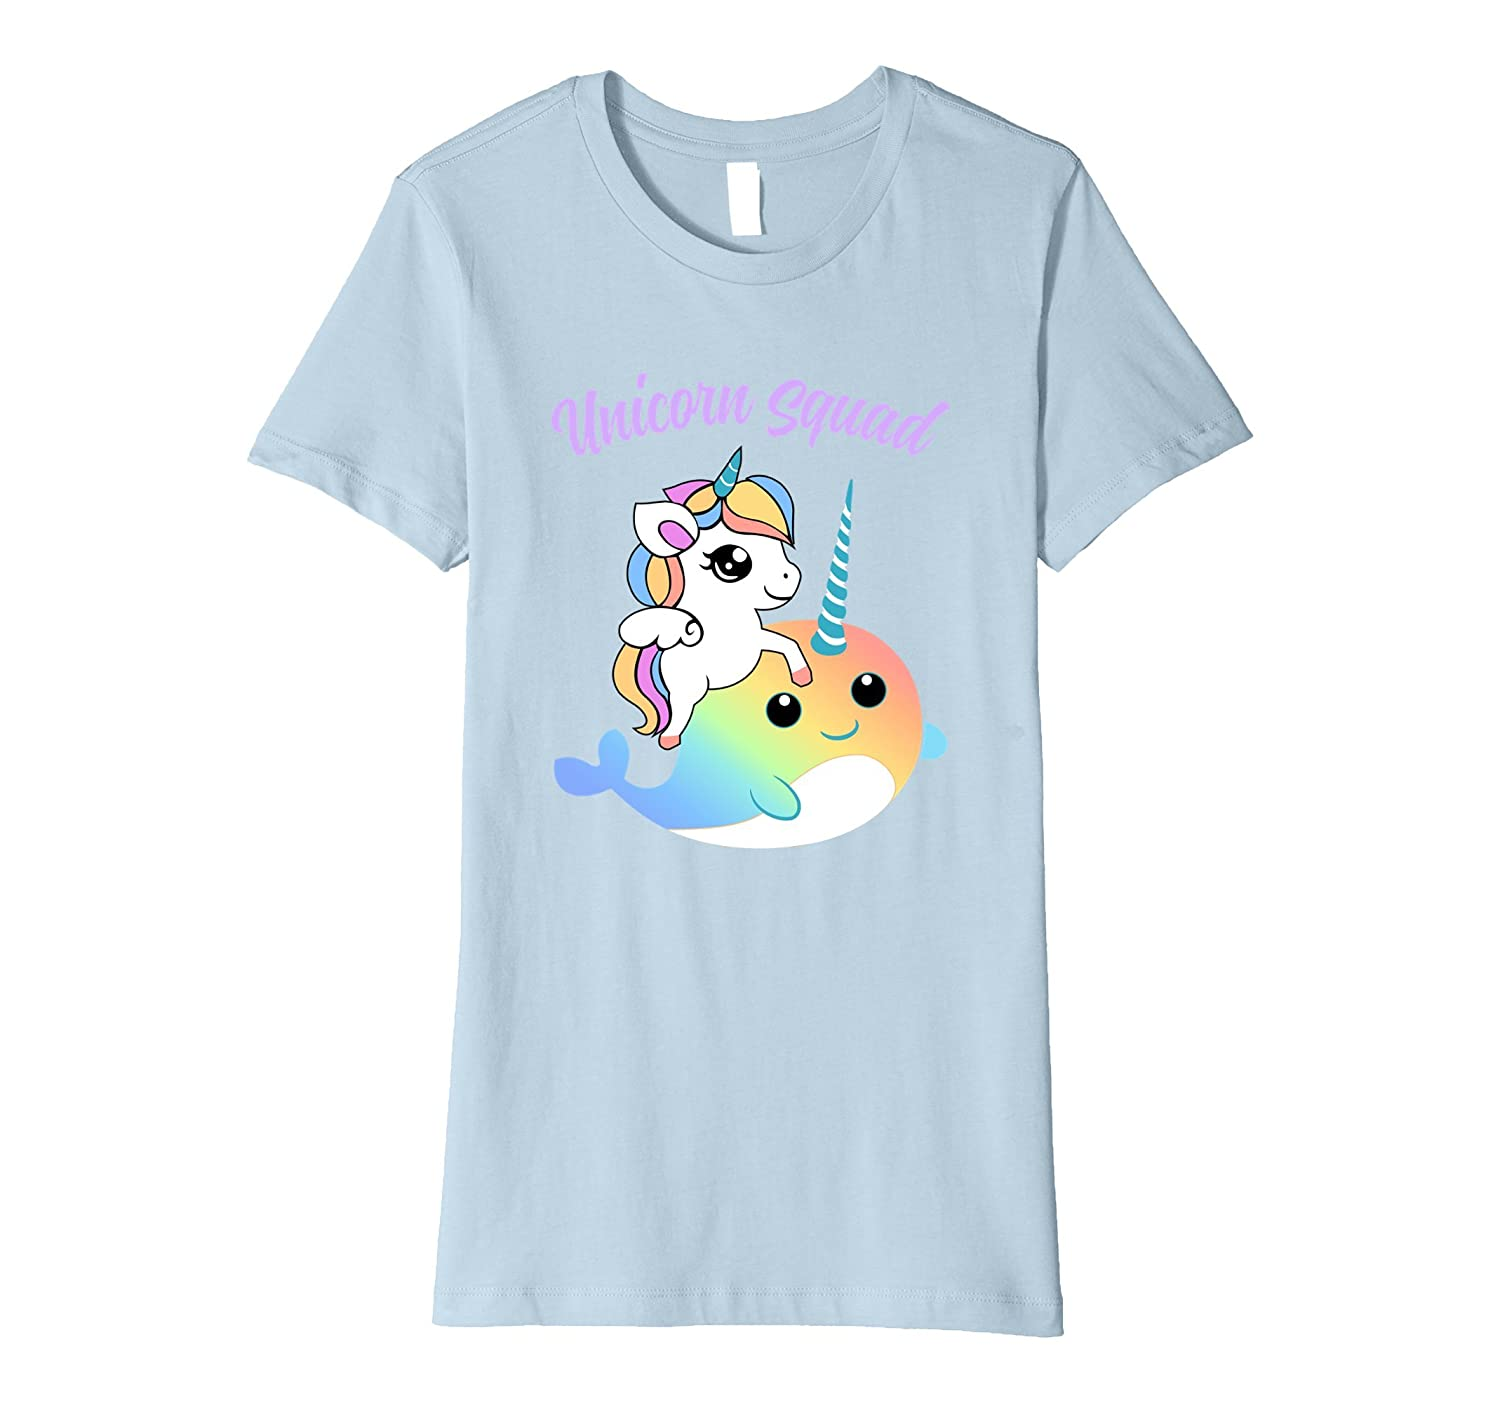 Cute Unicorn Squad t-shirt with Unicorn and Narwhal buddy-Newstyleth